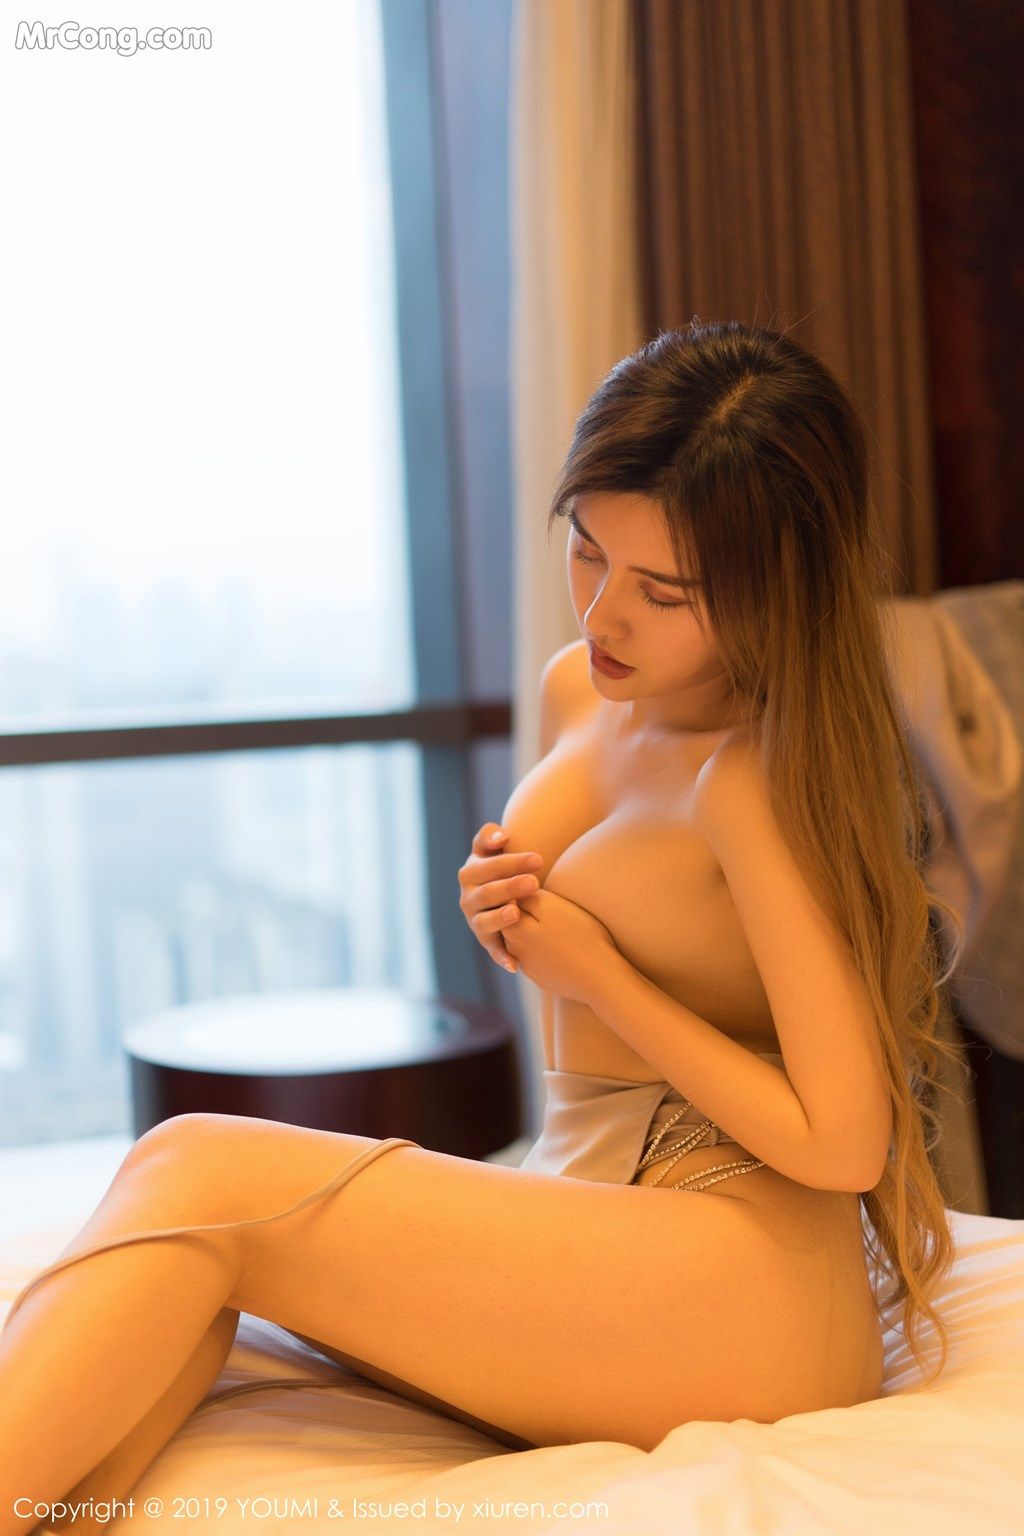 Image YouMi-Vol.283-Cris-MrCong.com-012 in post YouMi Vol.283: Cris_卓娅祺 (49 ảnh)